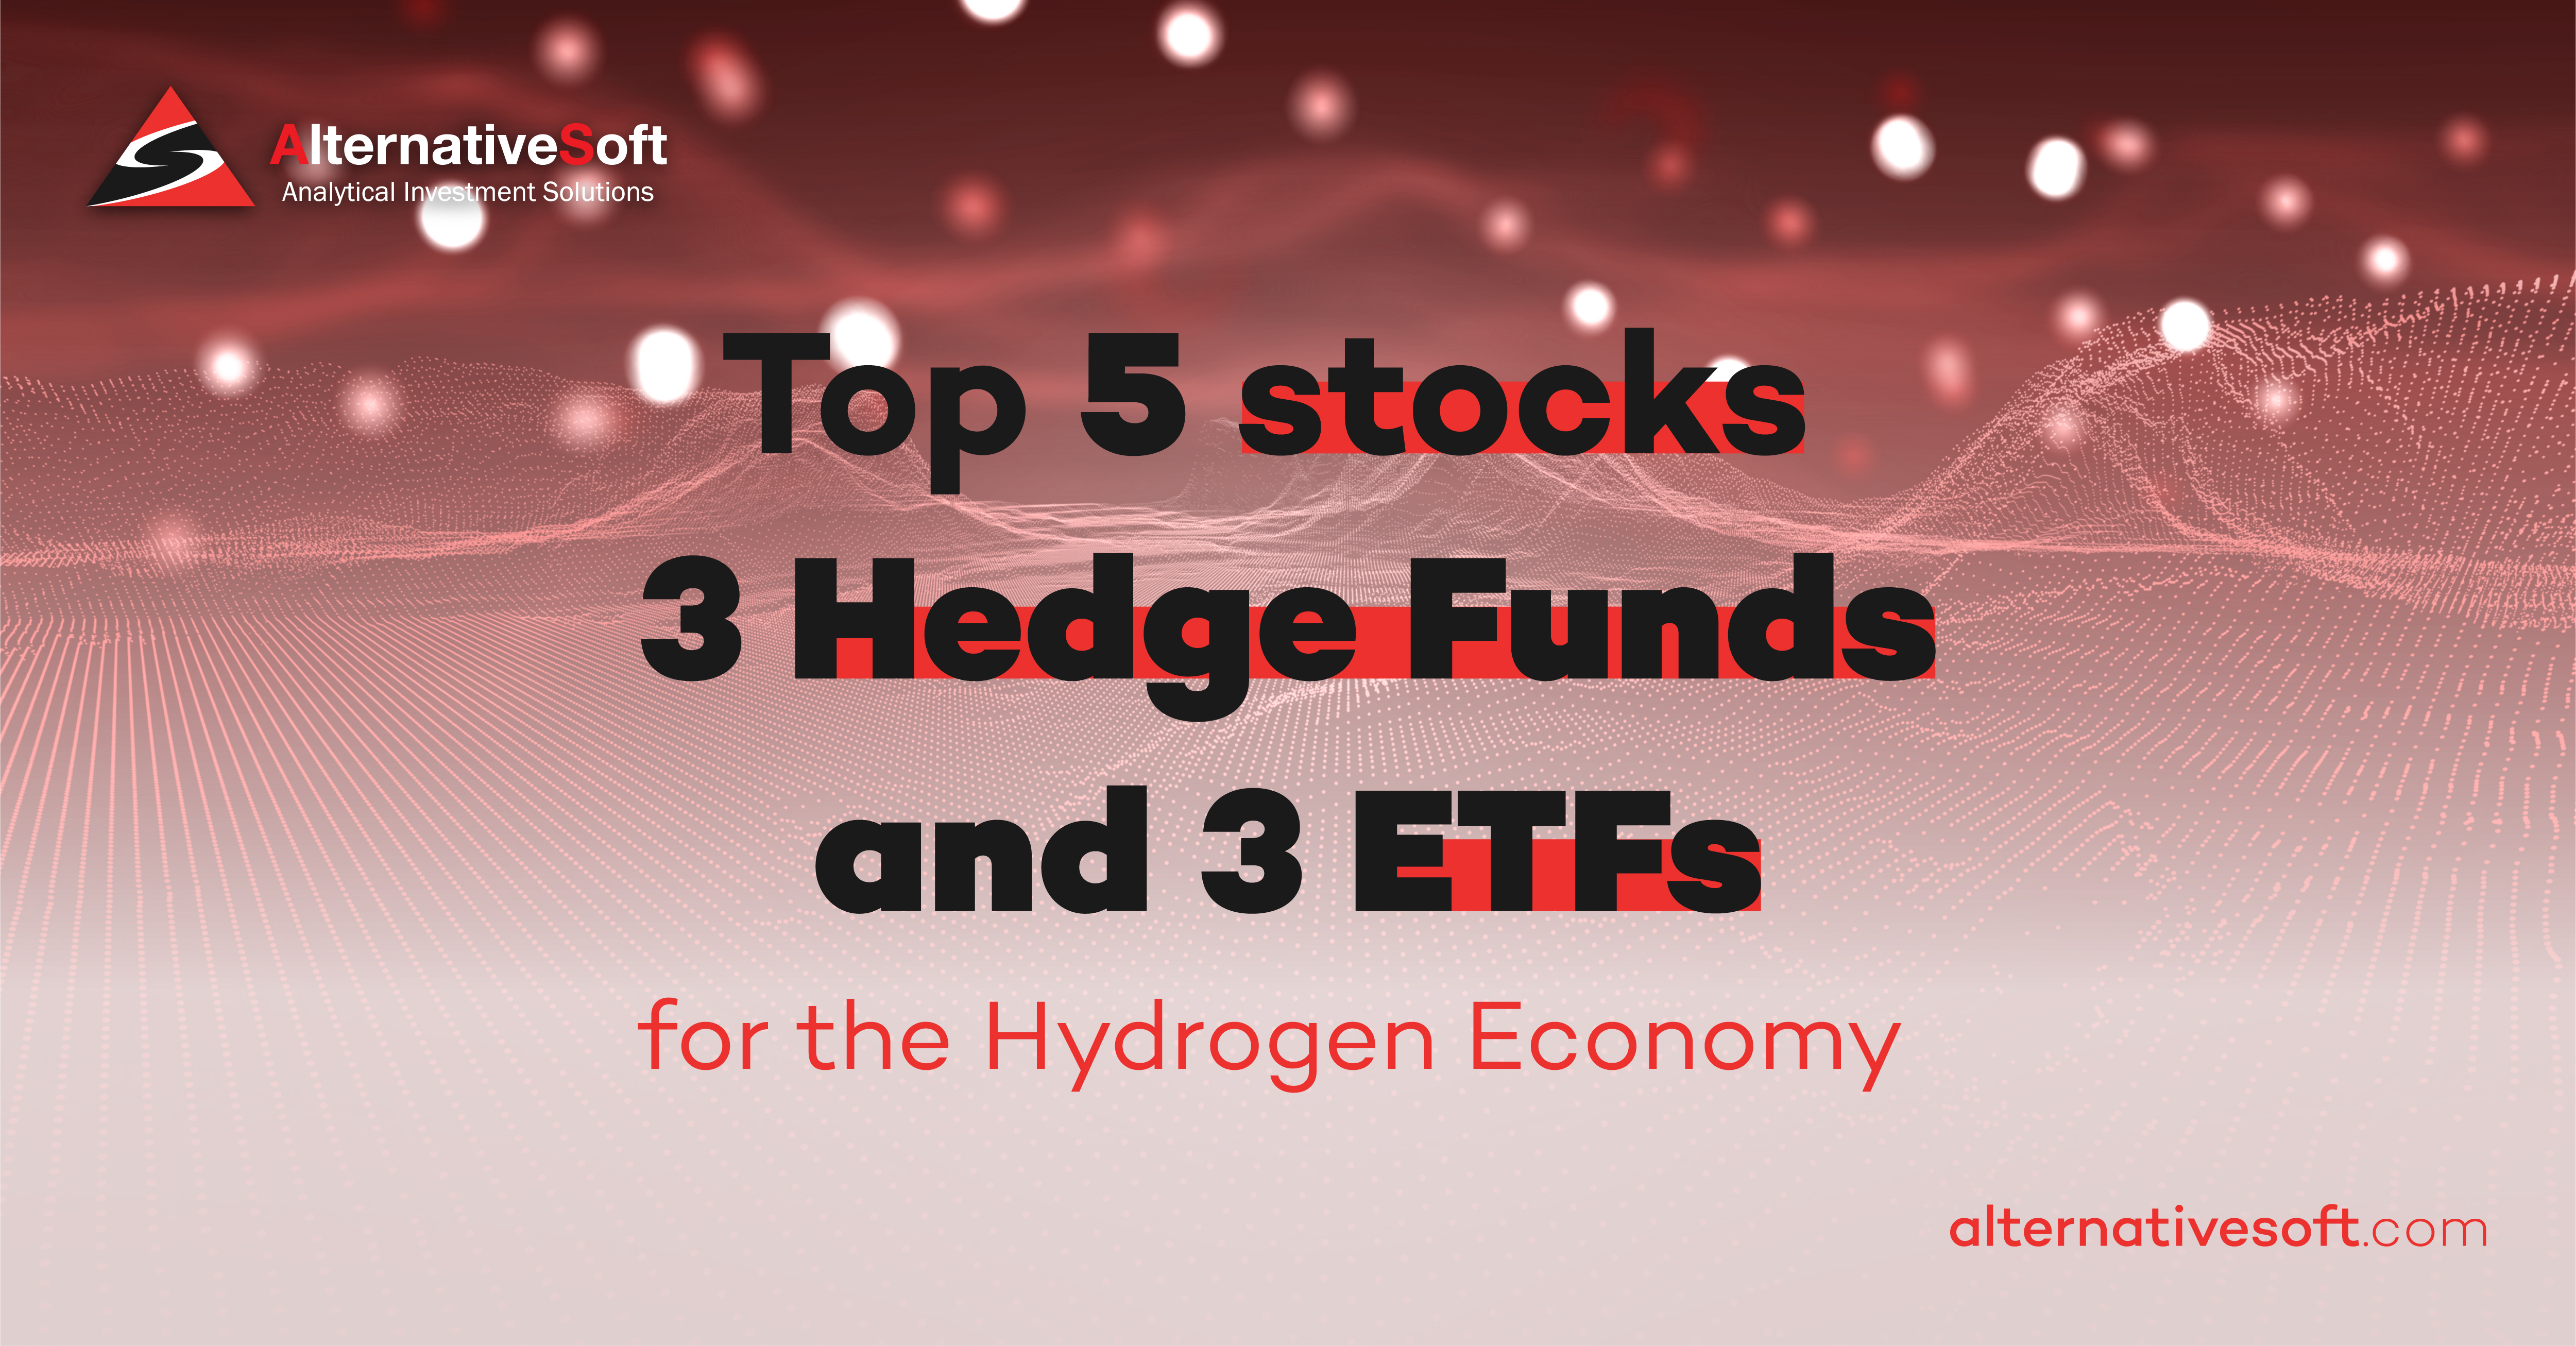 Top 5 stocks, 3 Hedge Funds and 3 ETFs for the Hydrogen Economy